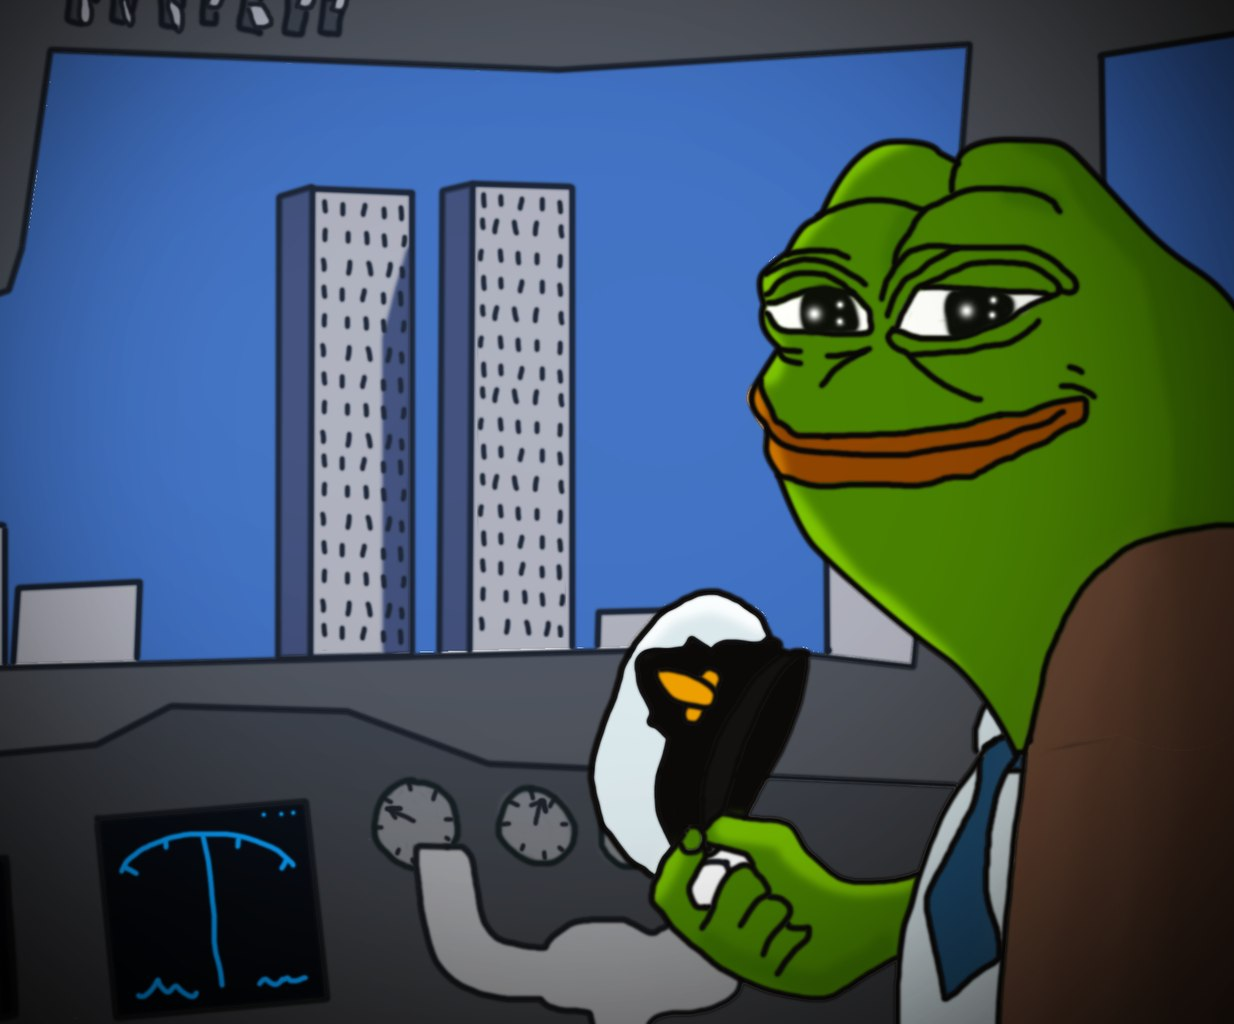 ca8 jet fuel can't melt steel memes pepe the frog know your meme